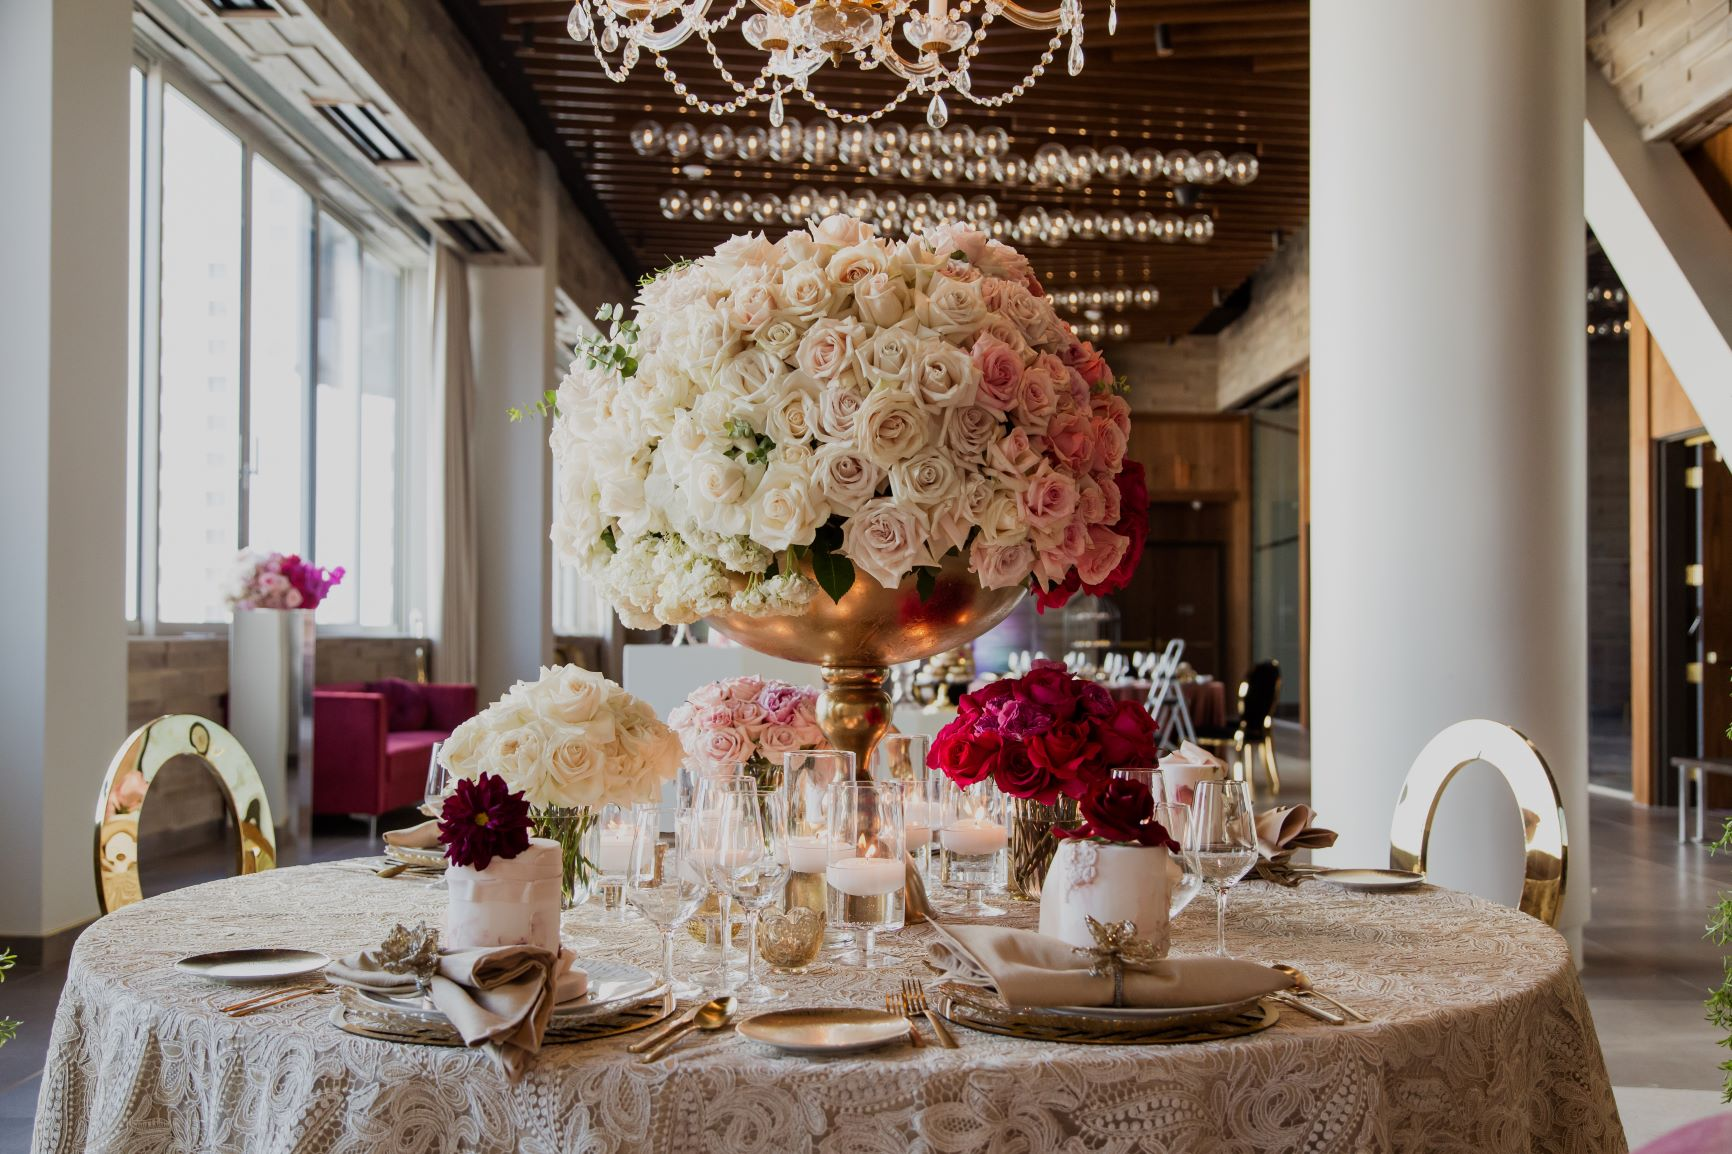 Large centerpiece with white and pink roses